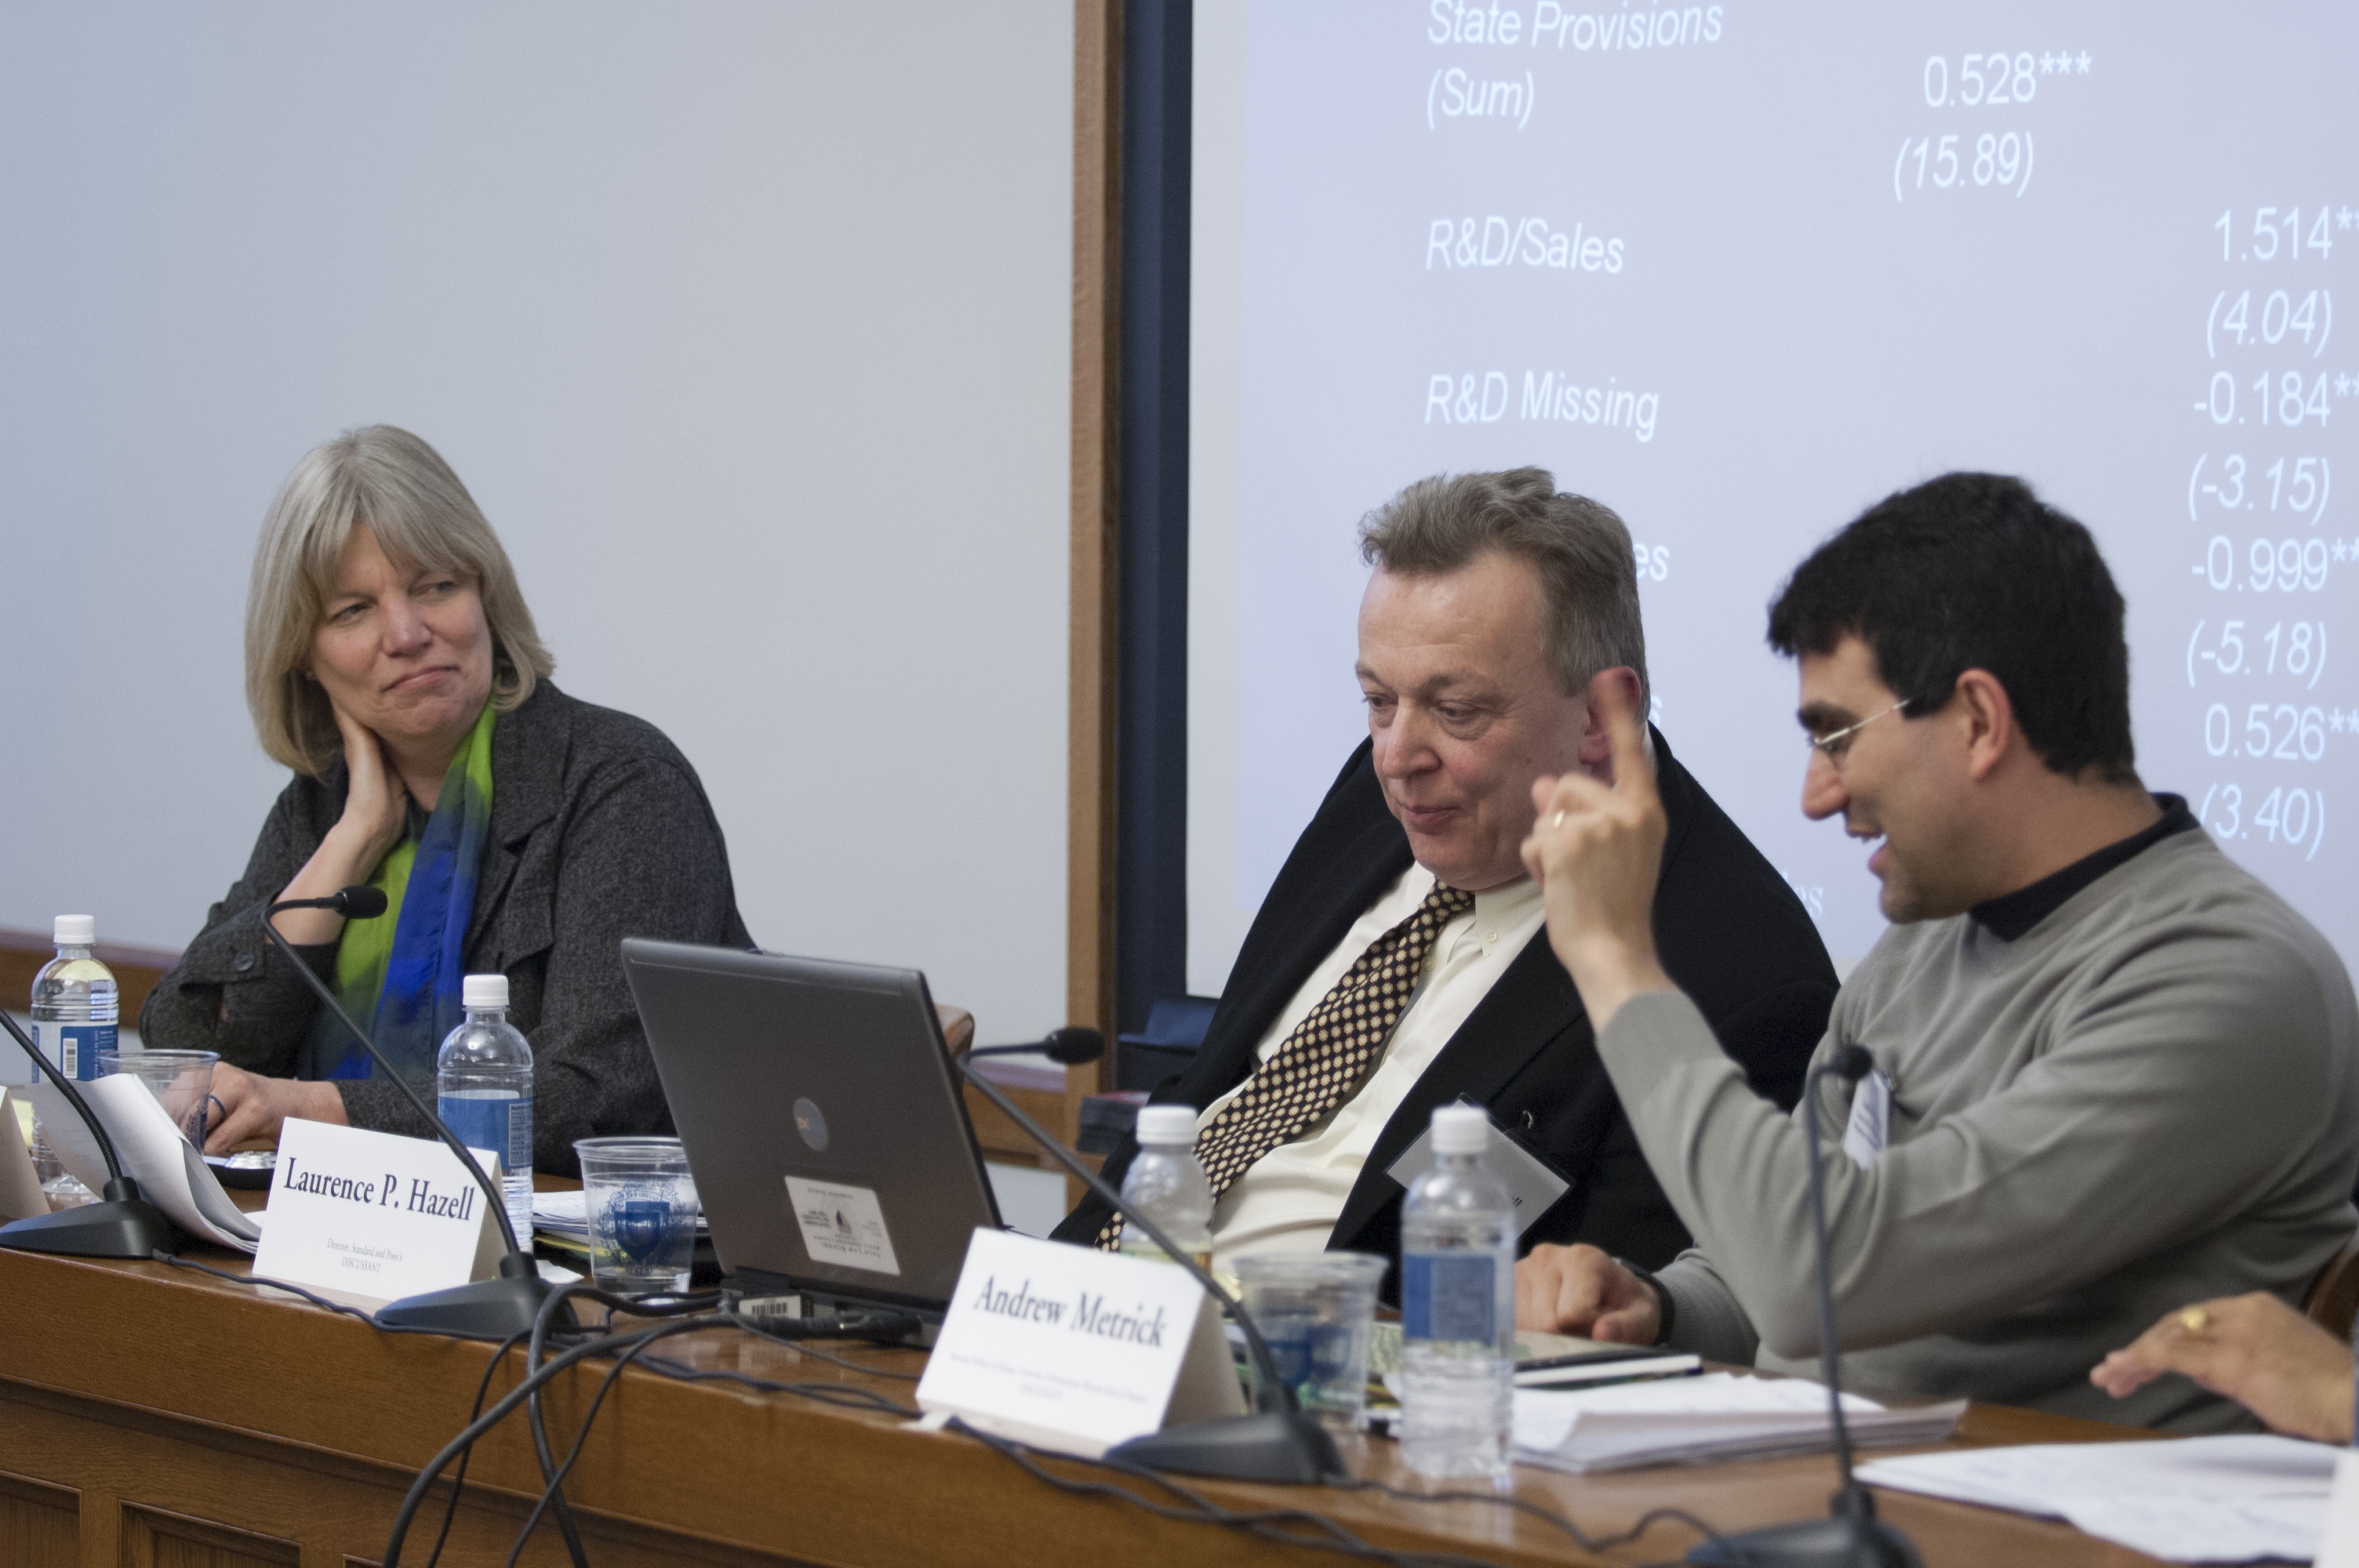 Texas McCombs Prof. Laura Starks, Laurence Hazell, and Yale SOM Prof. Andrew Metrick